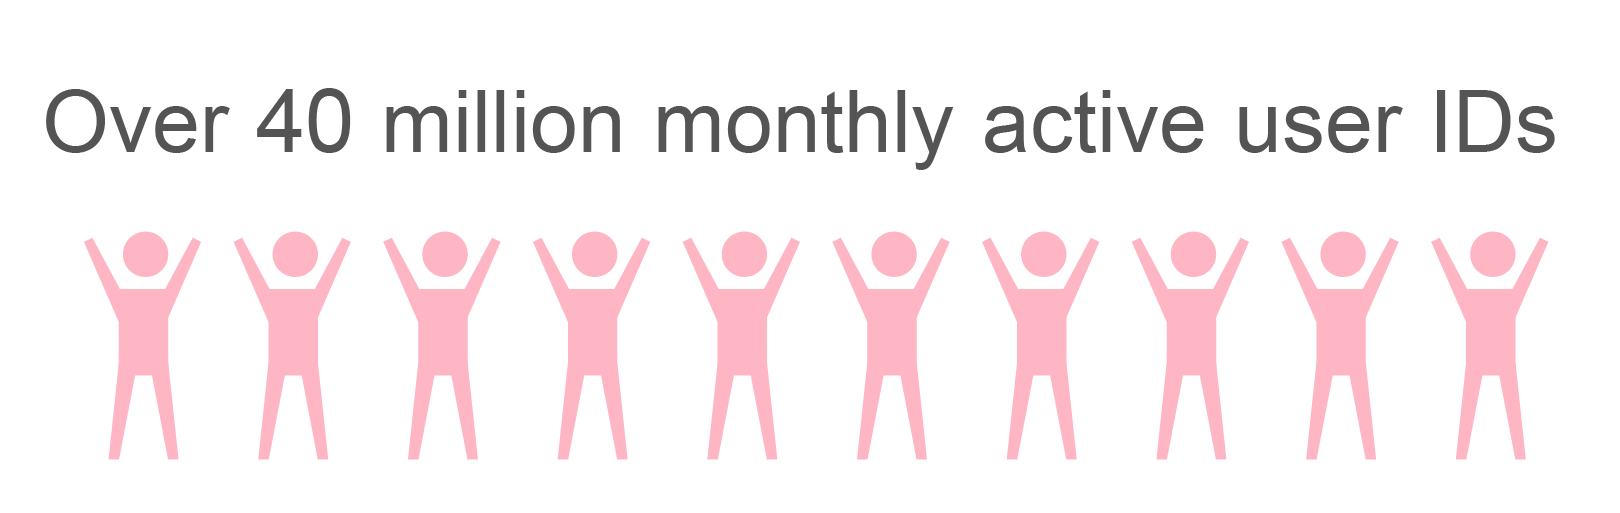 Over 40 million monthly active users (MAU) of all applications